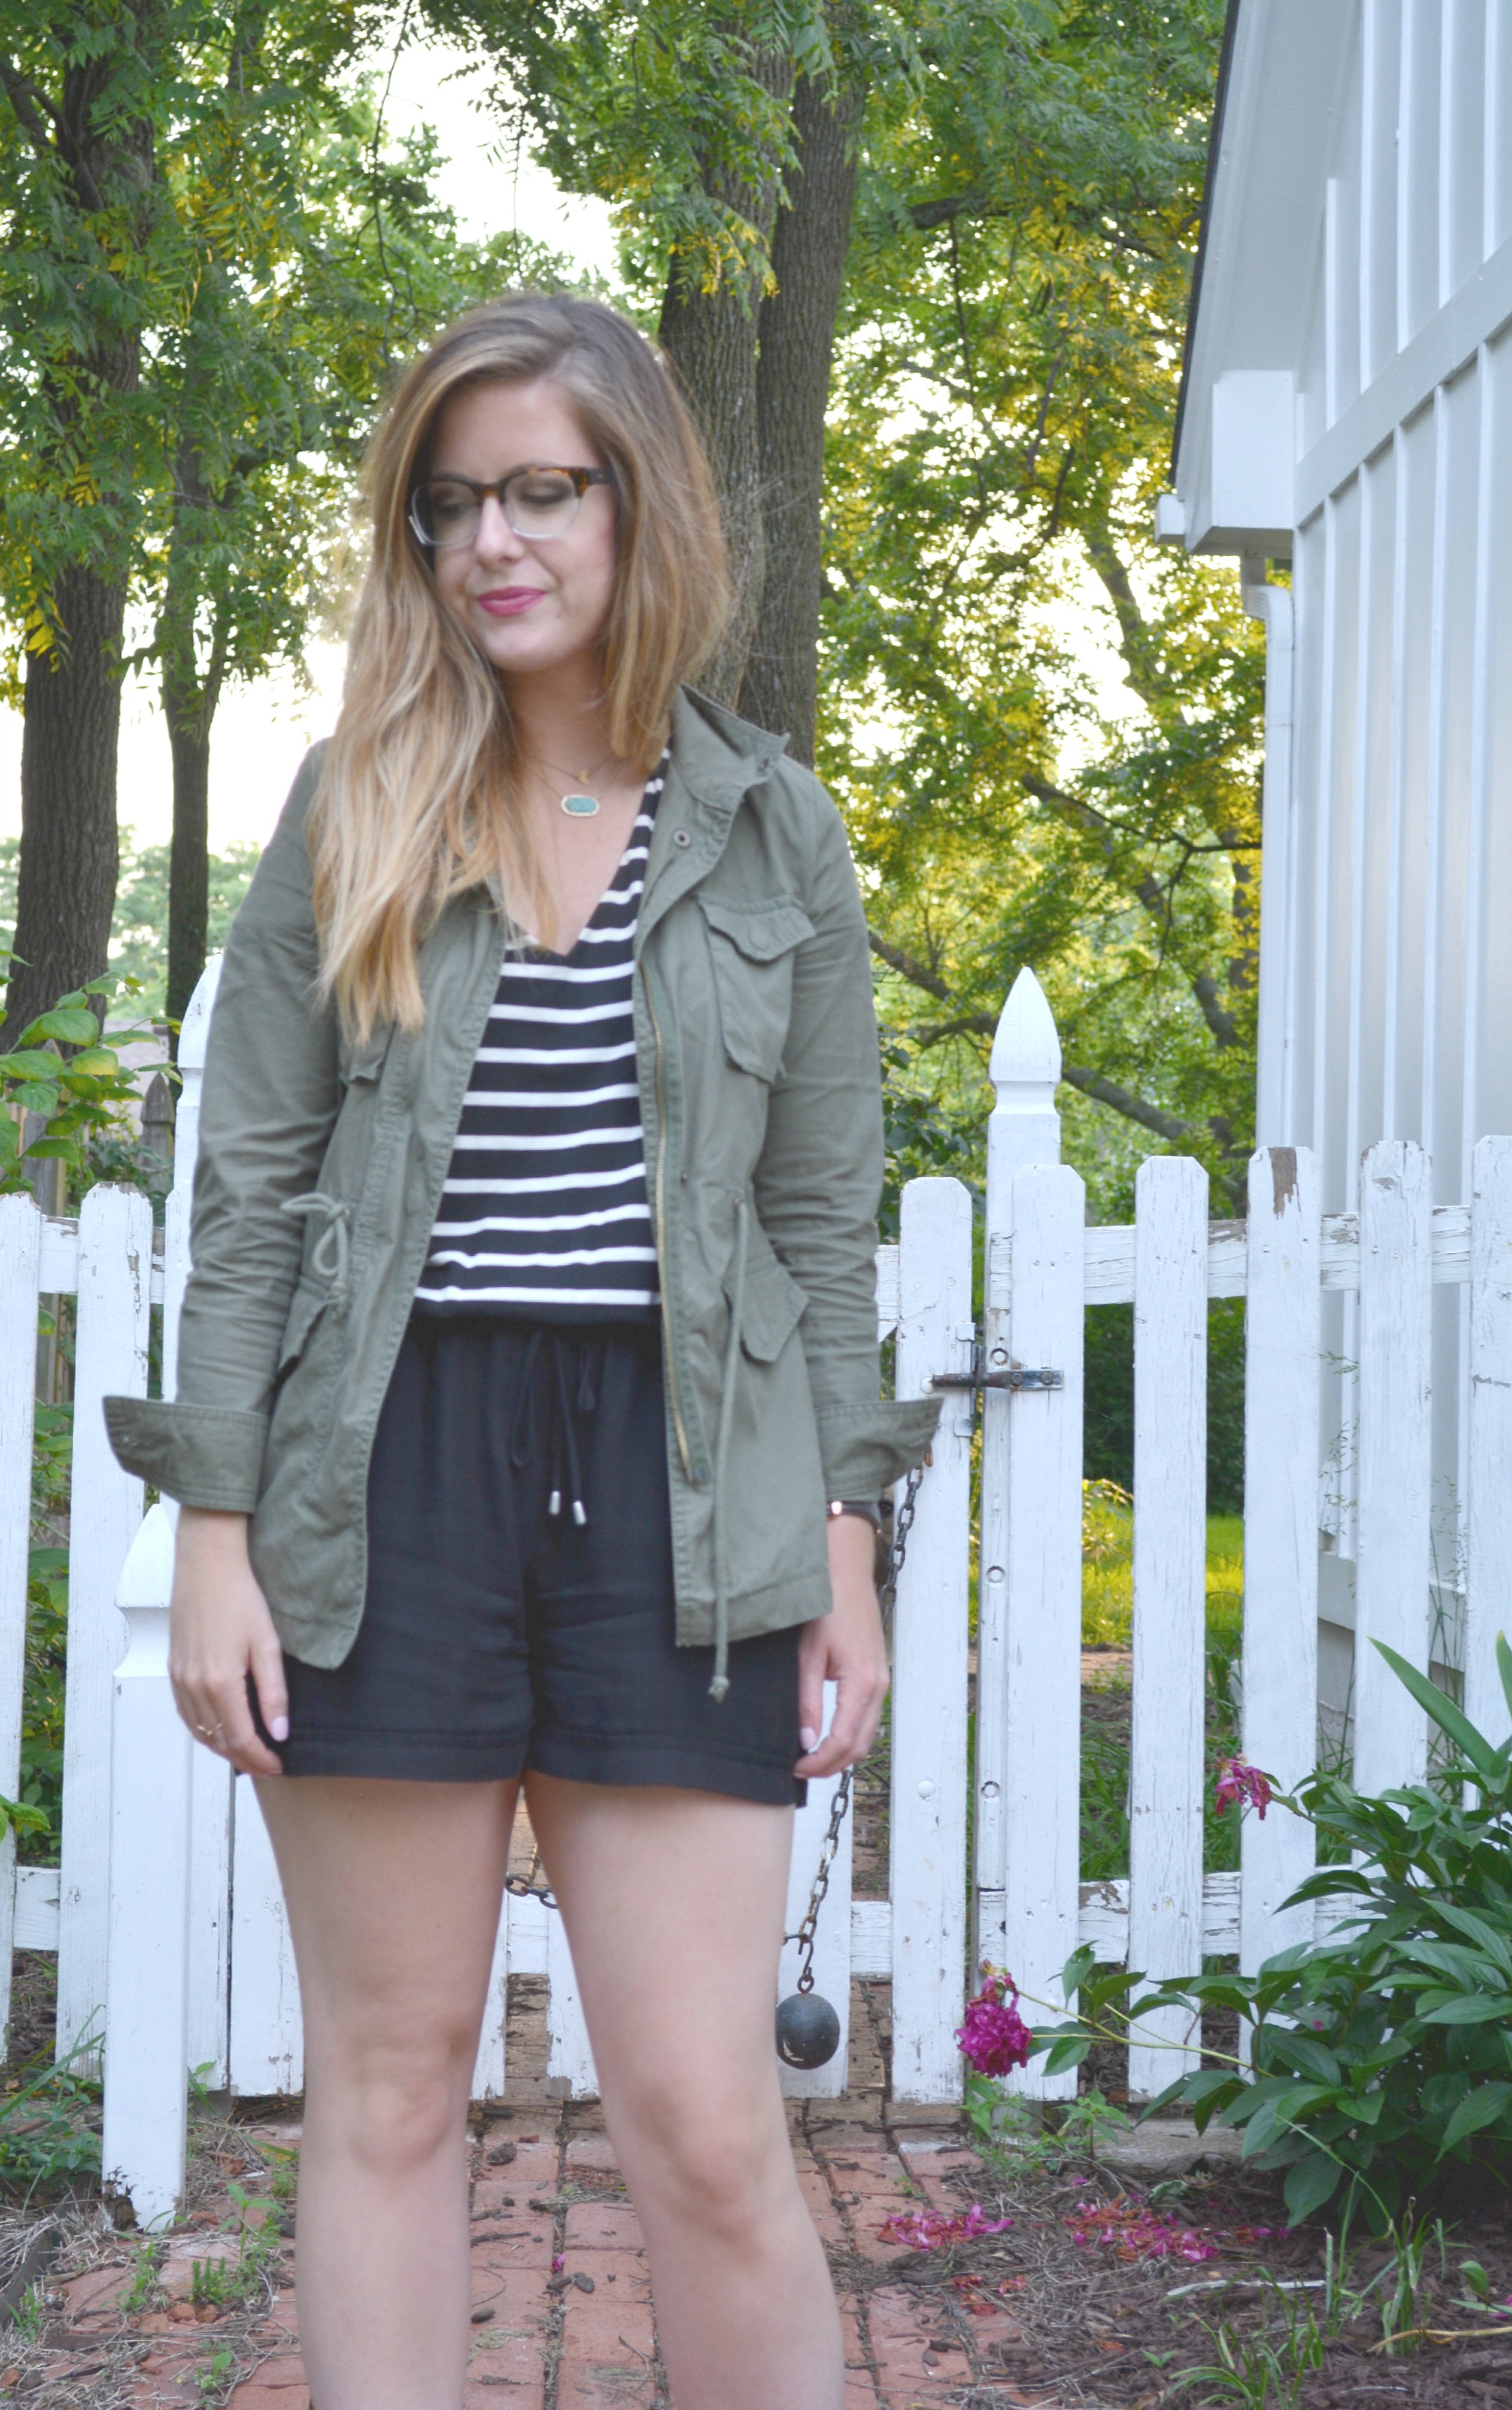 Polette eye glasses, green army jacket with stripe romper from Anthropologie on Sophisticaited.com